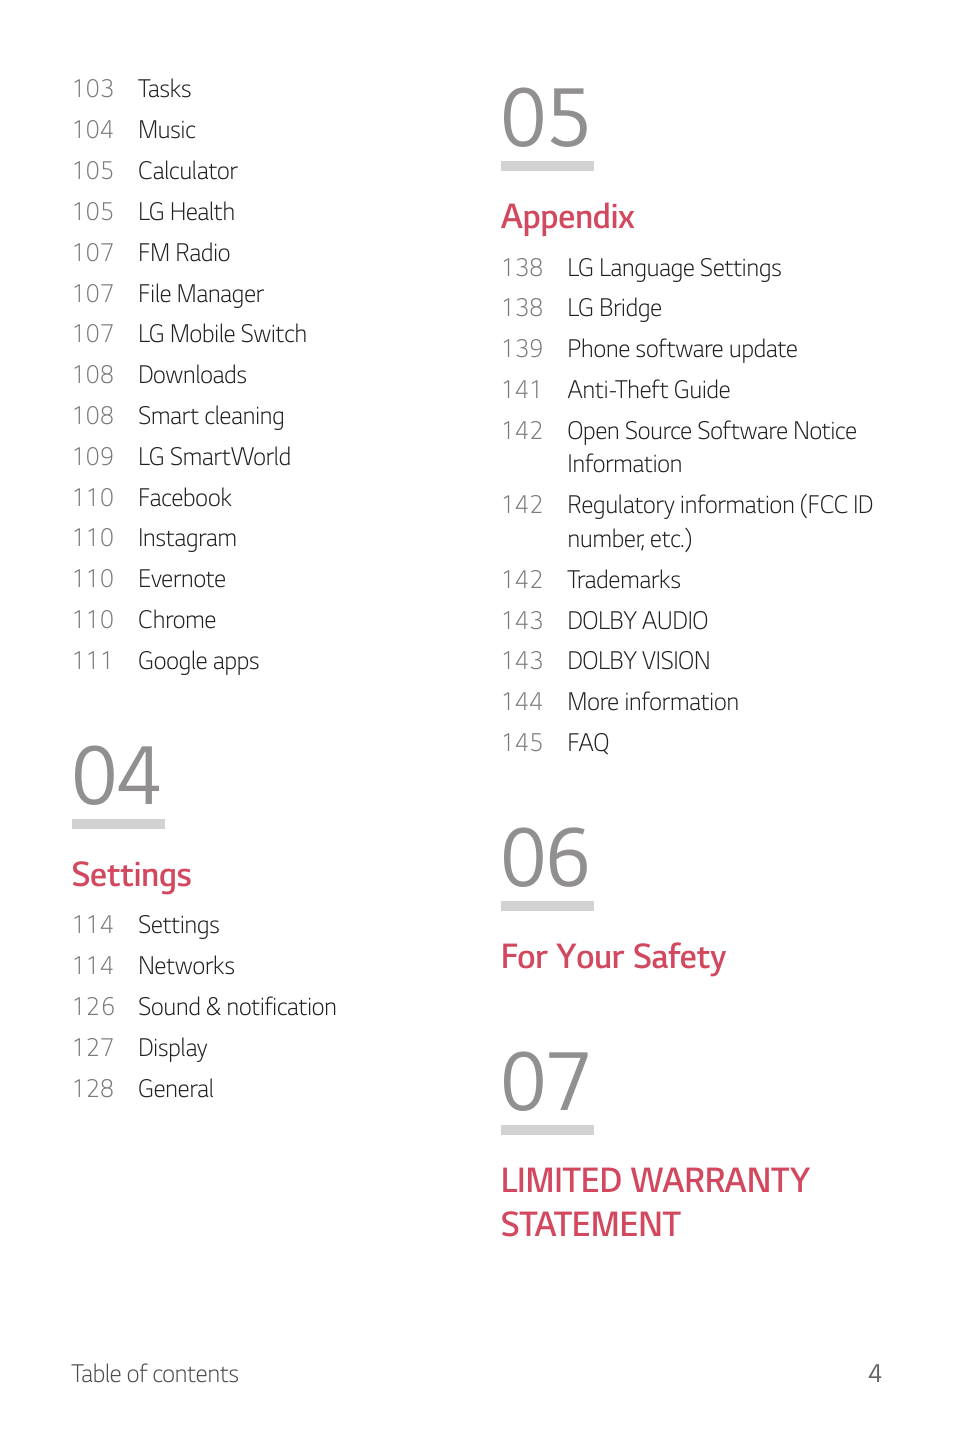 Settings, Appendix, For your safety | LG G6 H872 User Manual